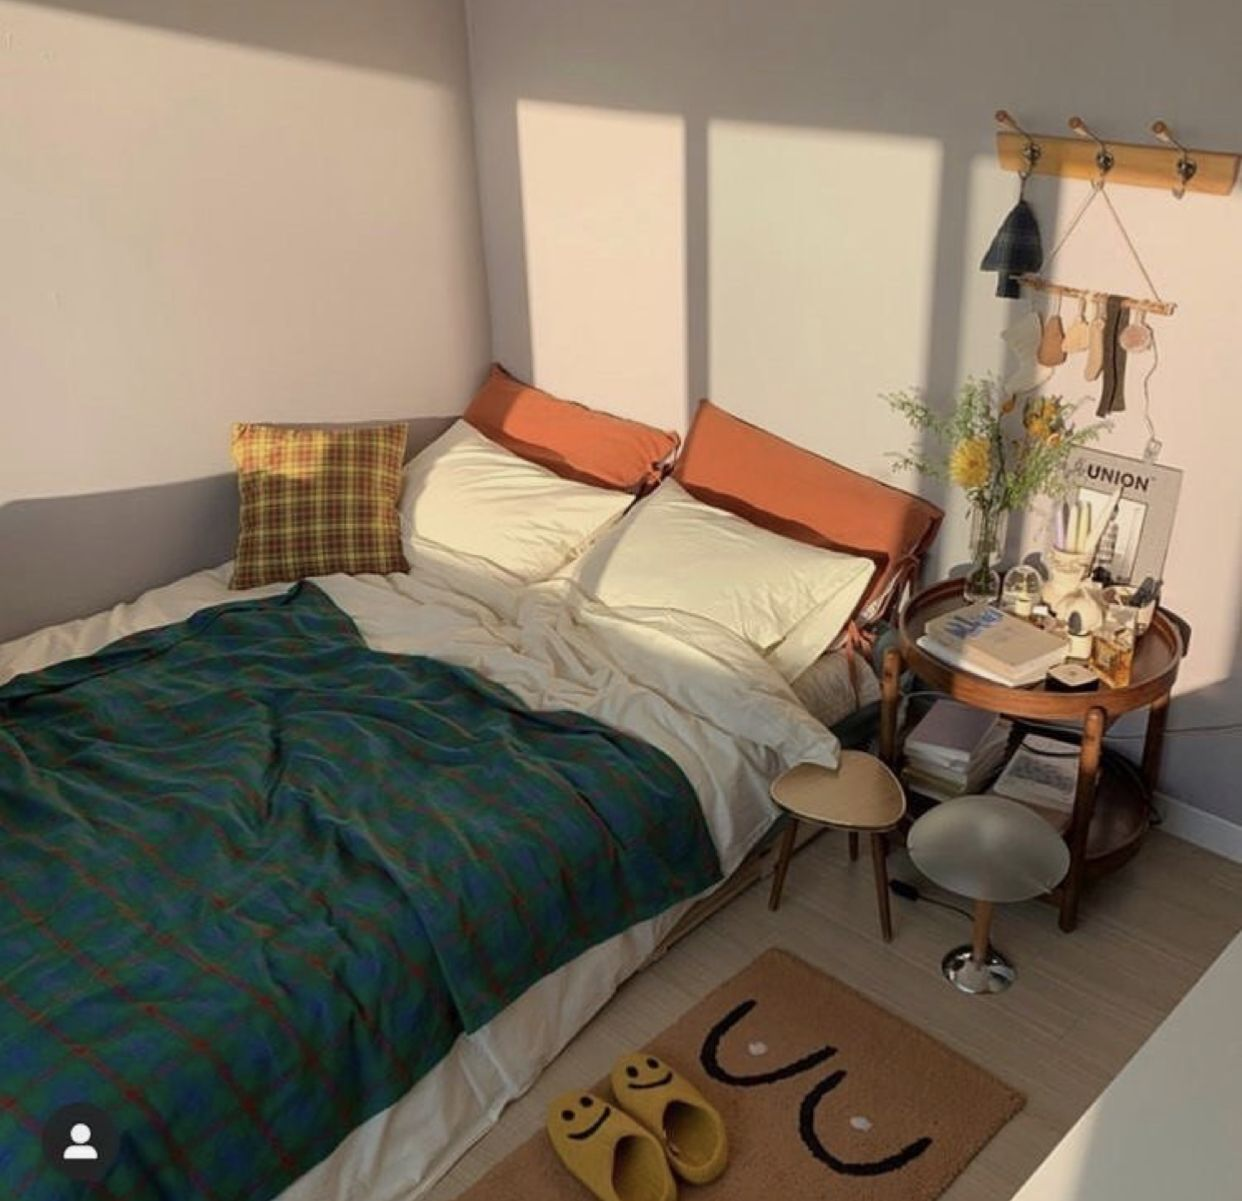 Door Room Decor Design Apartment Korean Aesthetic Tumblr Cute Lovely Bts Goldensun Goldenhour Sim In 2020 Minimalist Room Room Inspo Aesthetic Room Decor